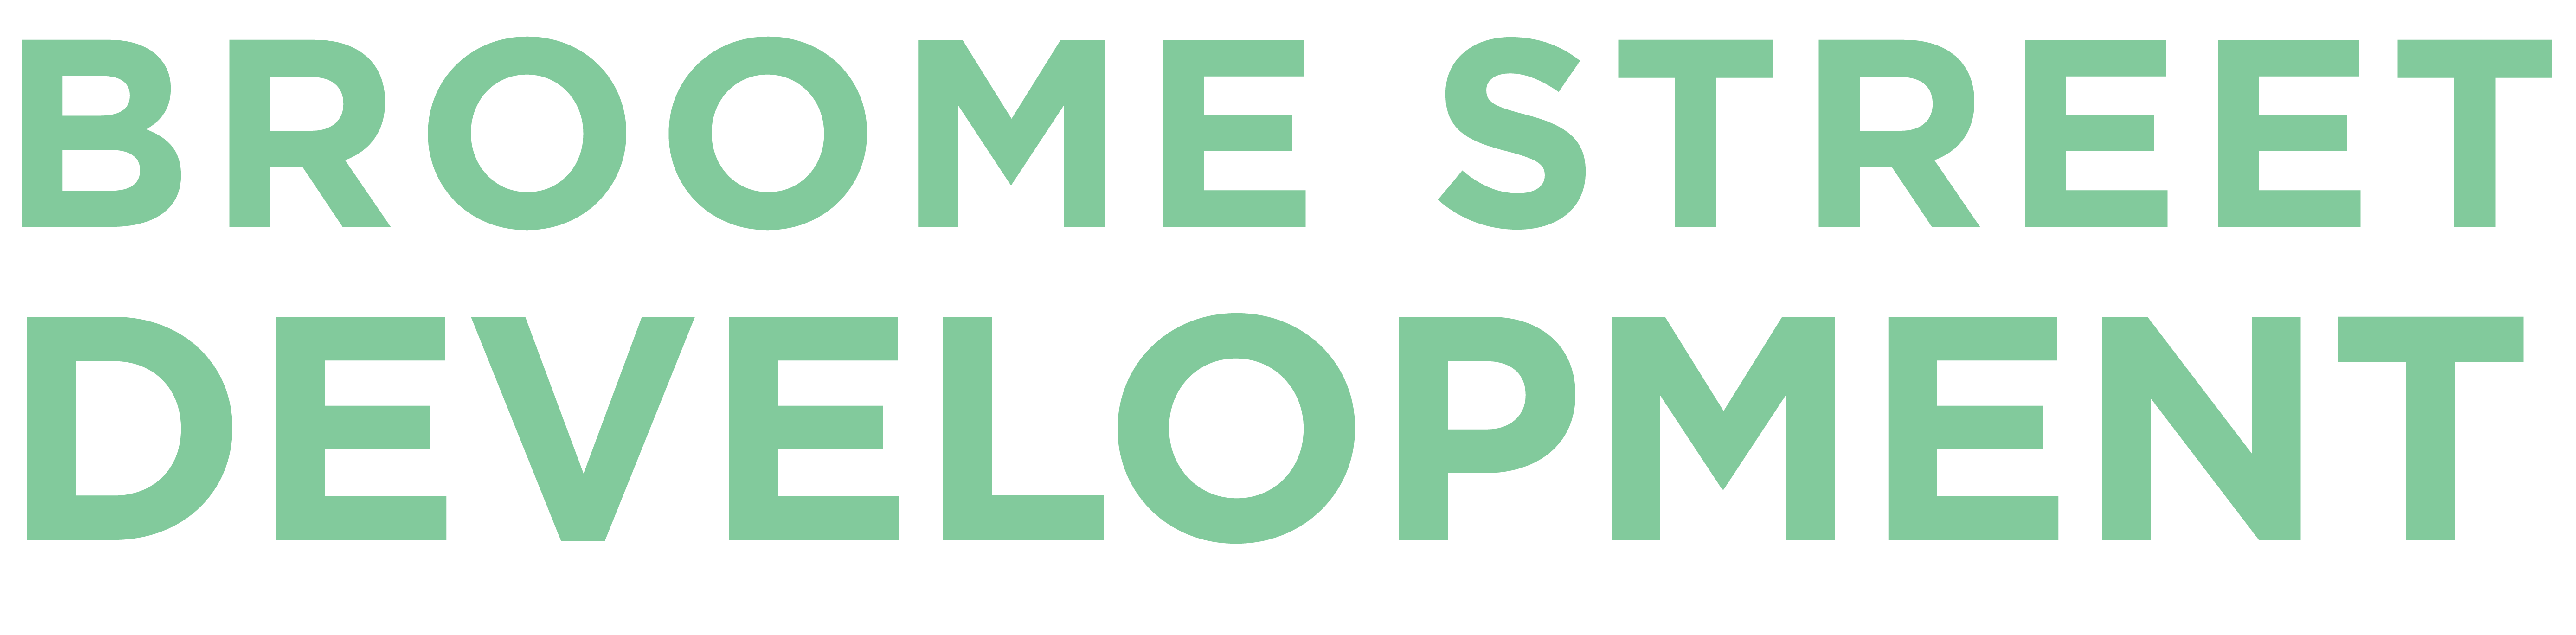 BroomeStreet Development logo